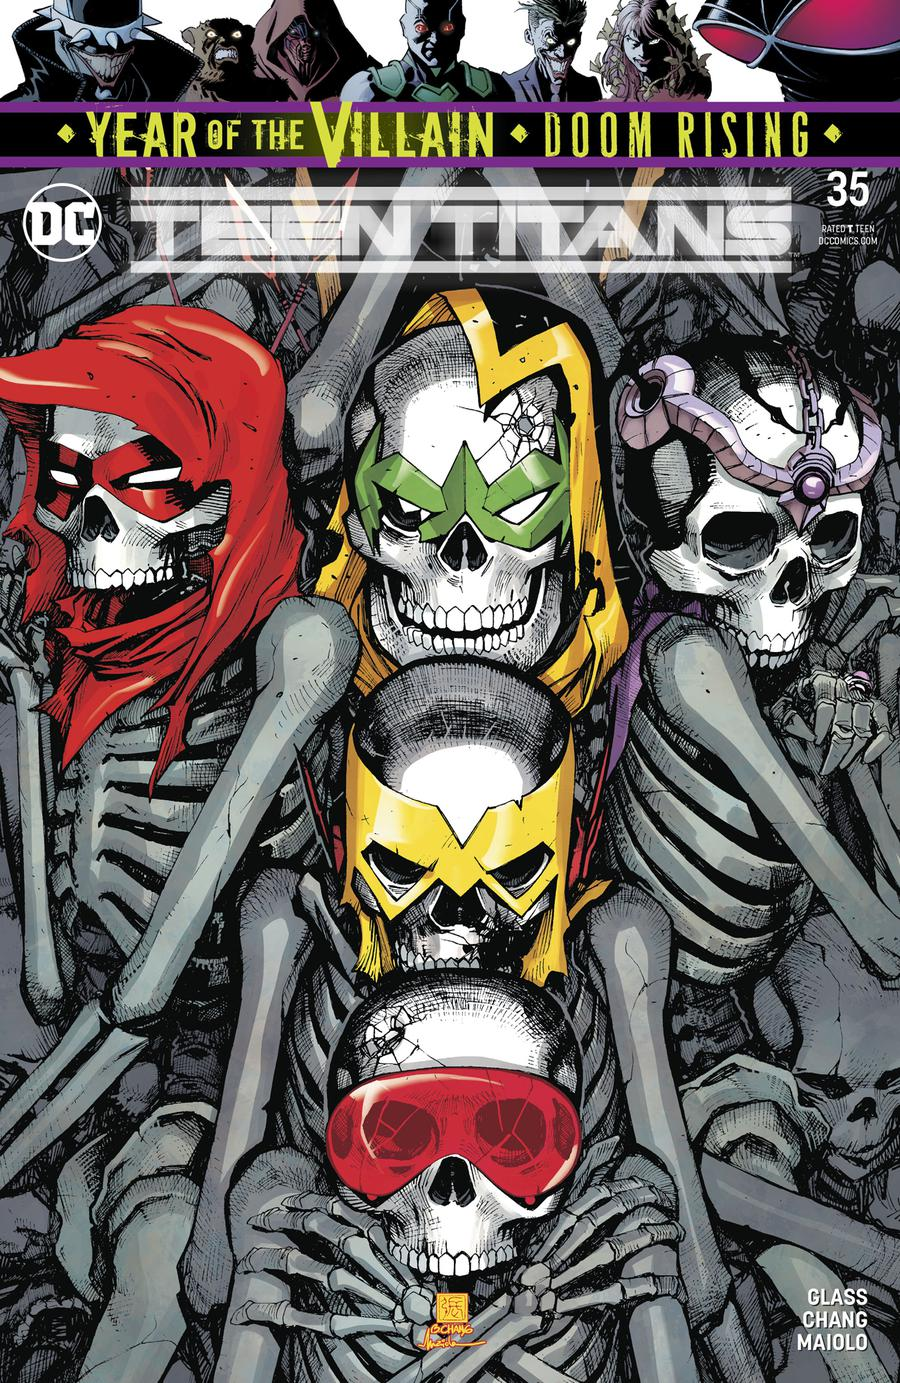 Teen Titans Vol 6 #35 Cover A Regular Bernard Chang Cover (Year Of The Villain Doom Rising Tie-In)